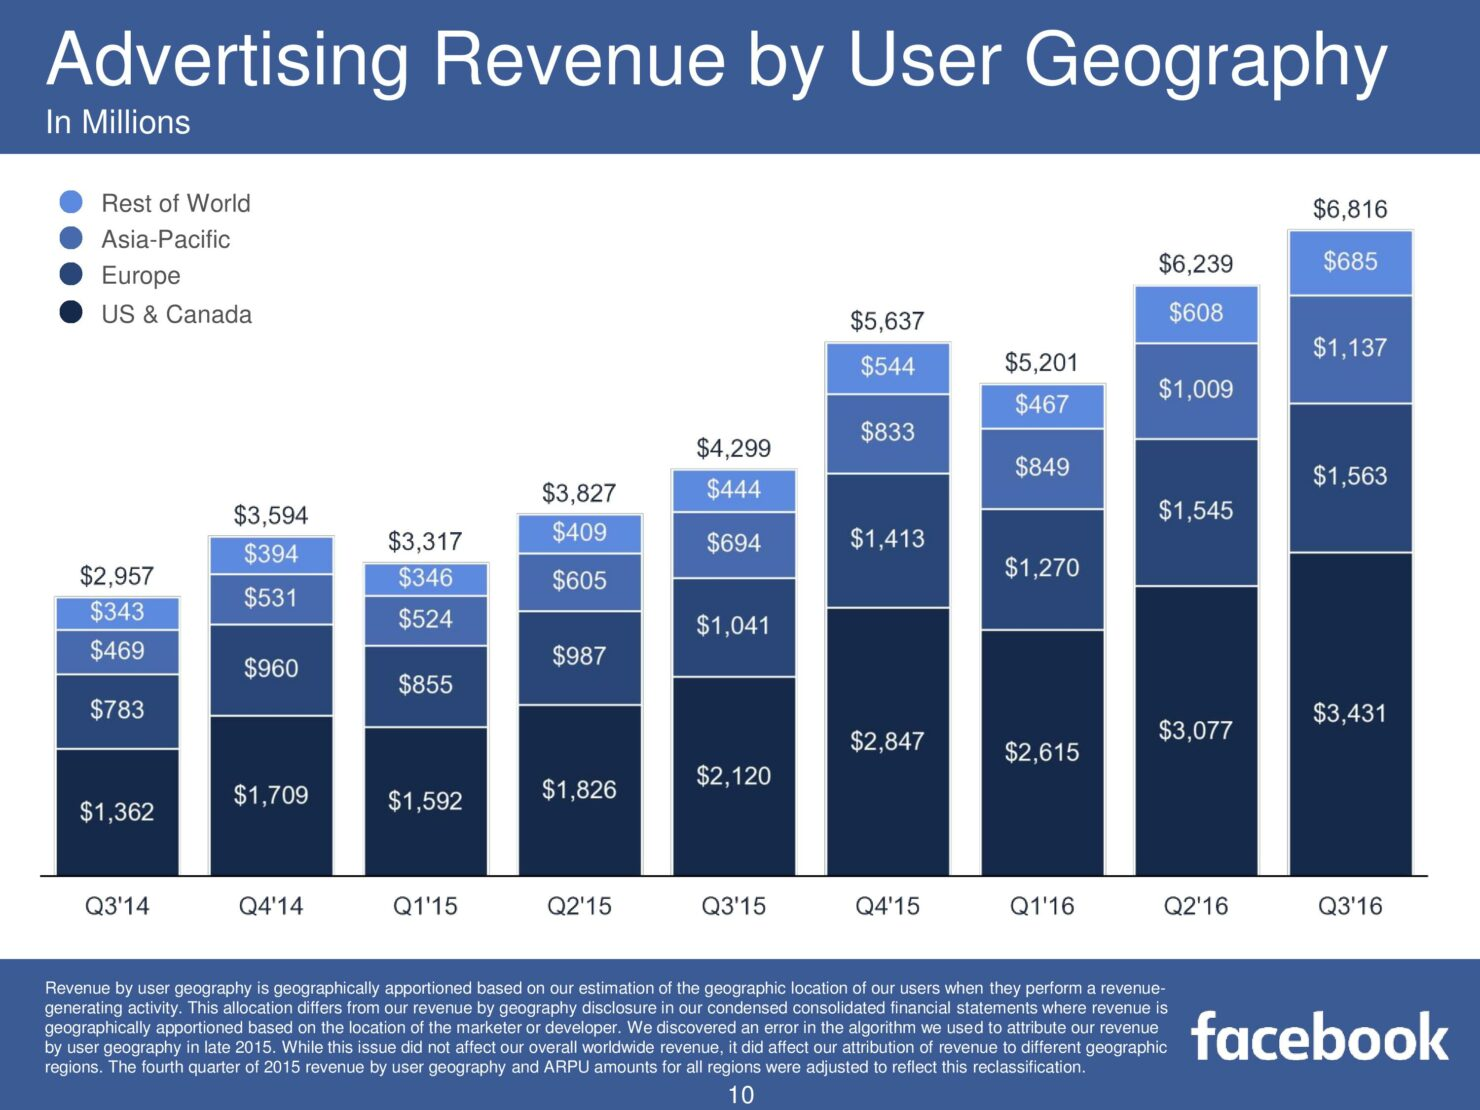 fb-q316-earnings-slides-page-010